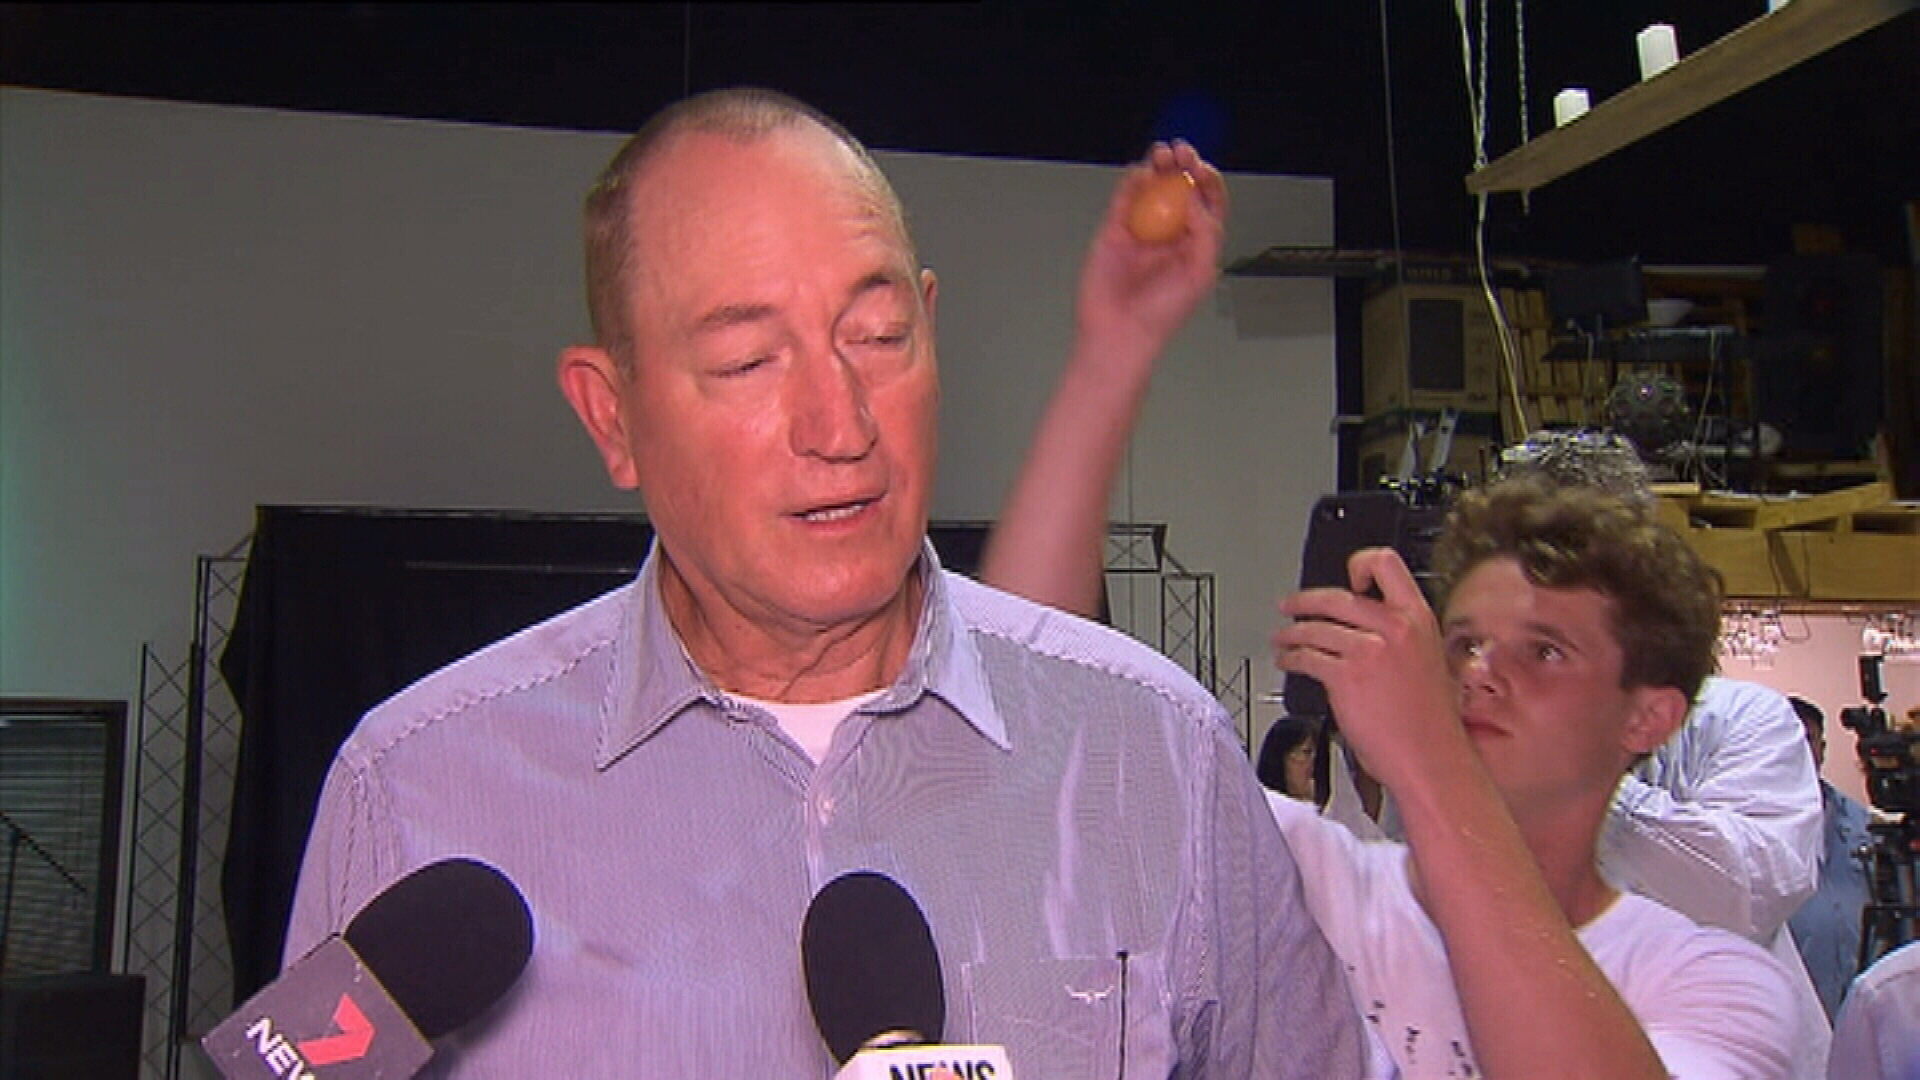 Fraser Anning News: Liberal Party To Preference Fraser Anning Last: Australia